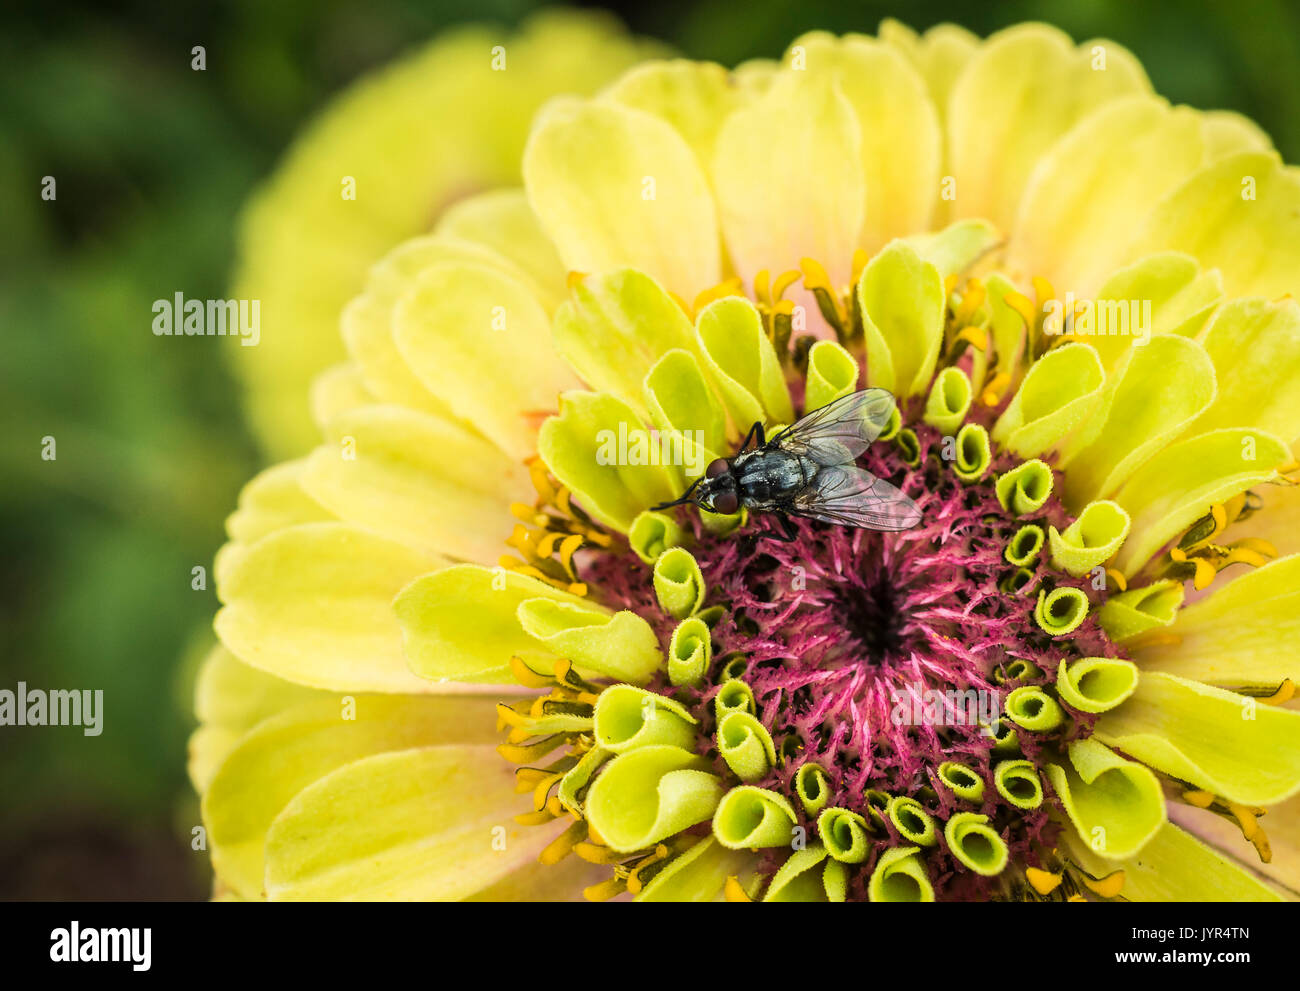 Macro / Close up of a female Morellia Simplex sweat fly sitting on an open bloom of a Zinnia Queen Lime yellow green and pink flower - Stock Image